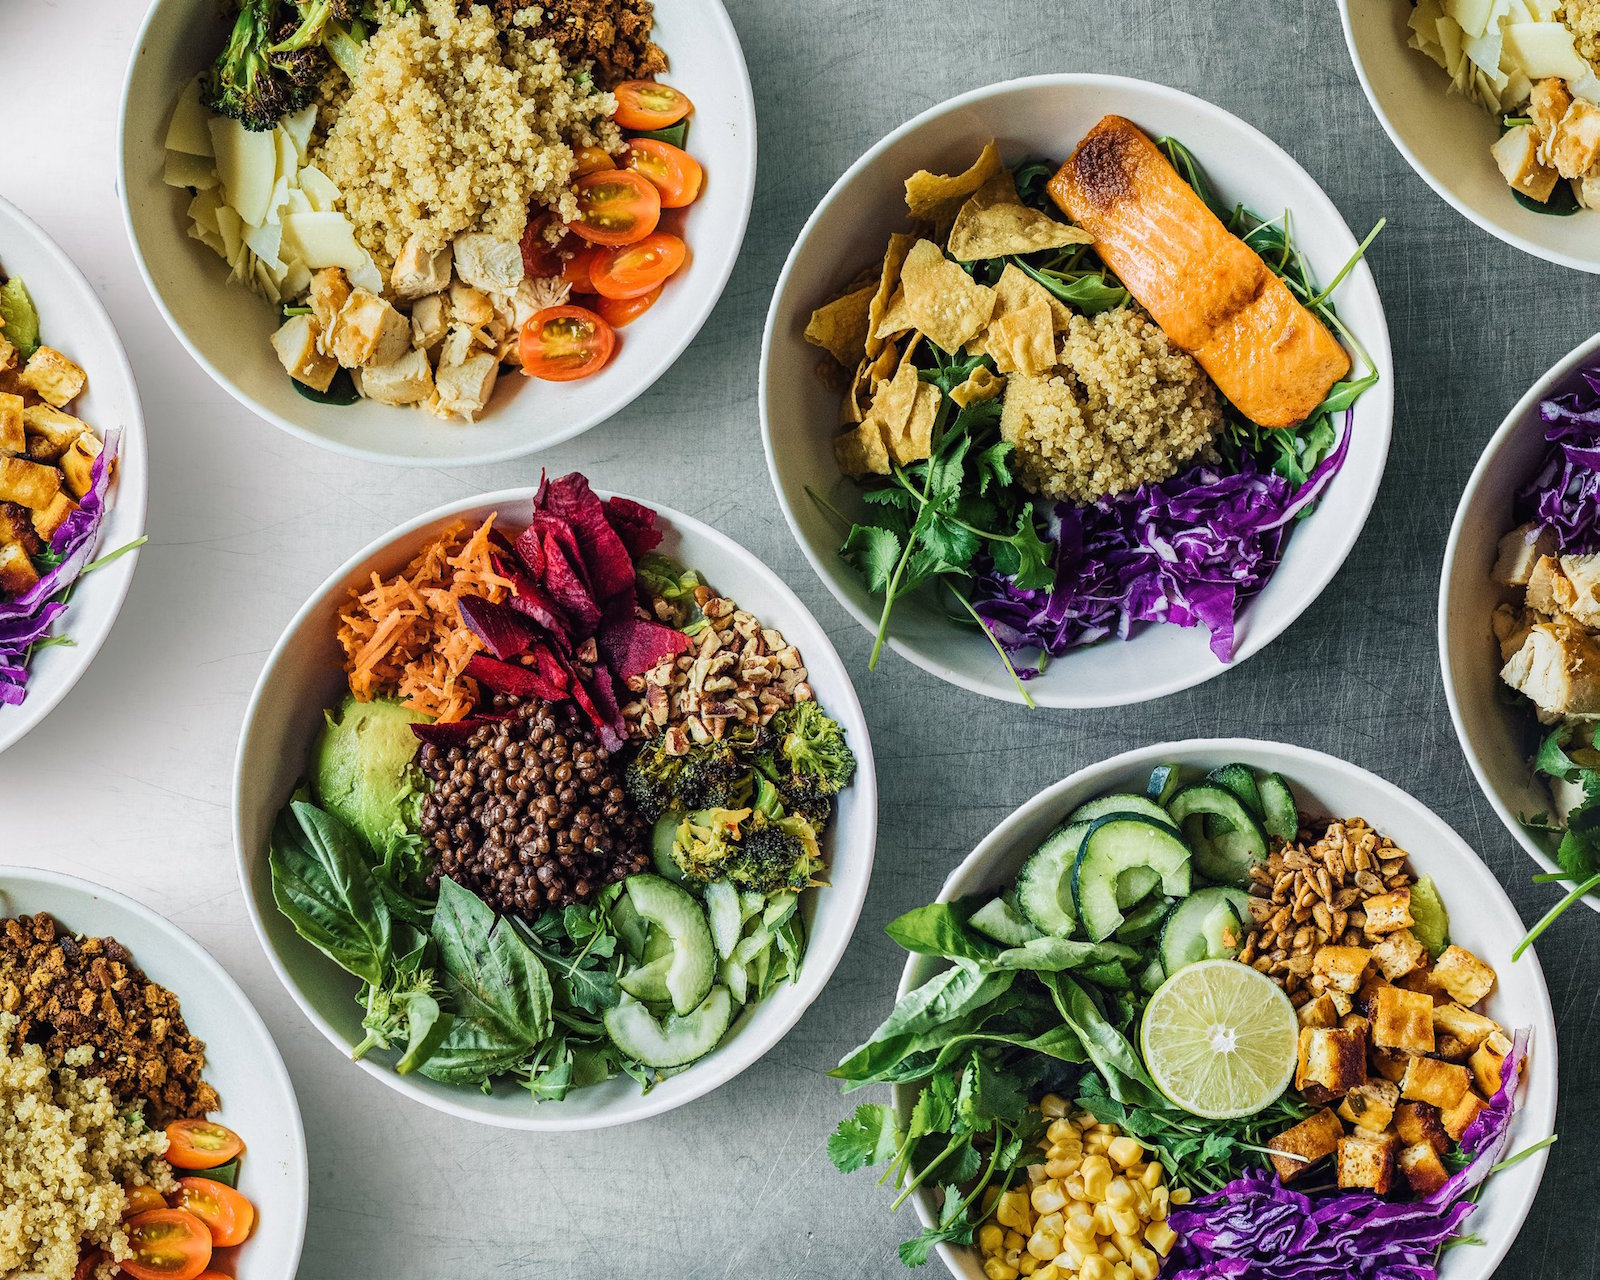 How to Make a Perfect Salad, According to a Sweetgreen Founder